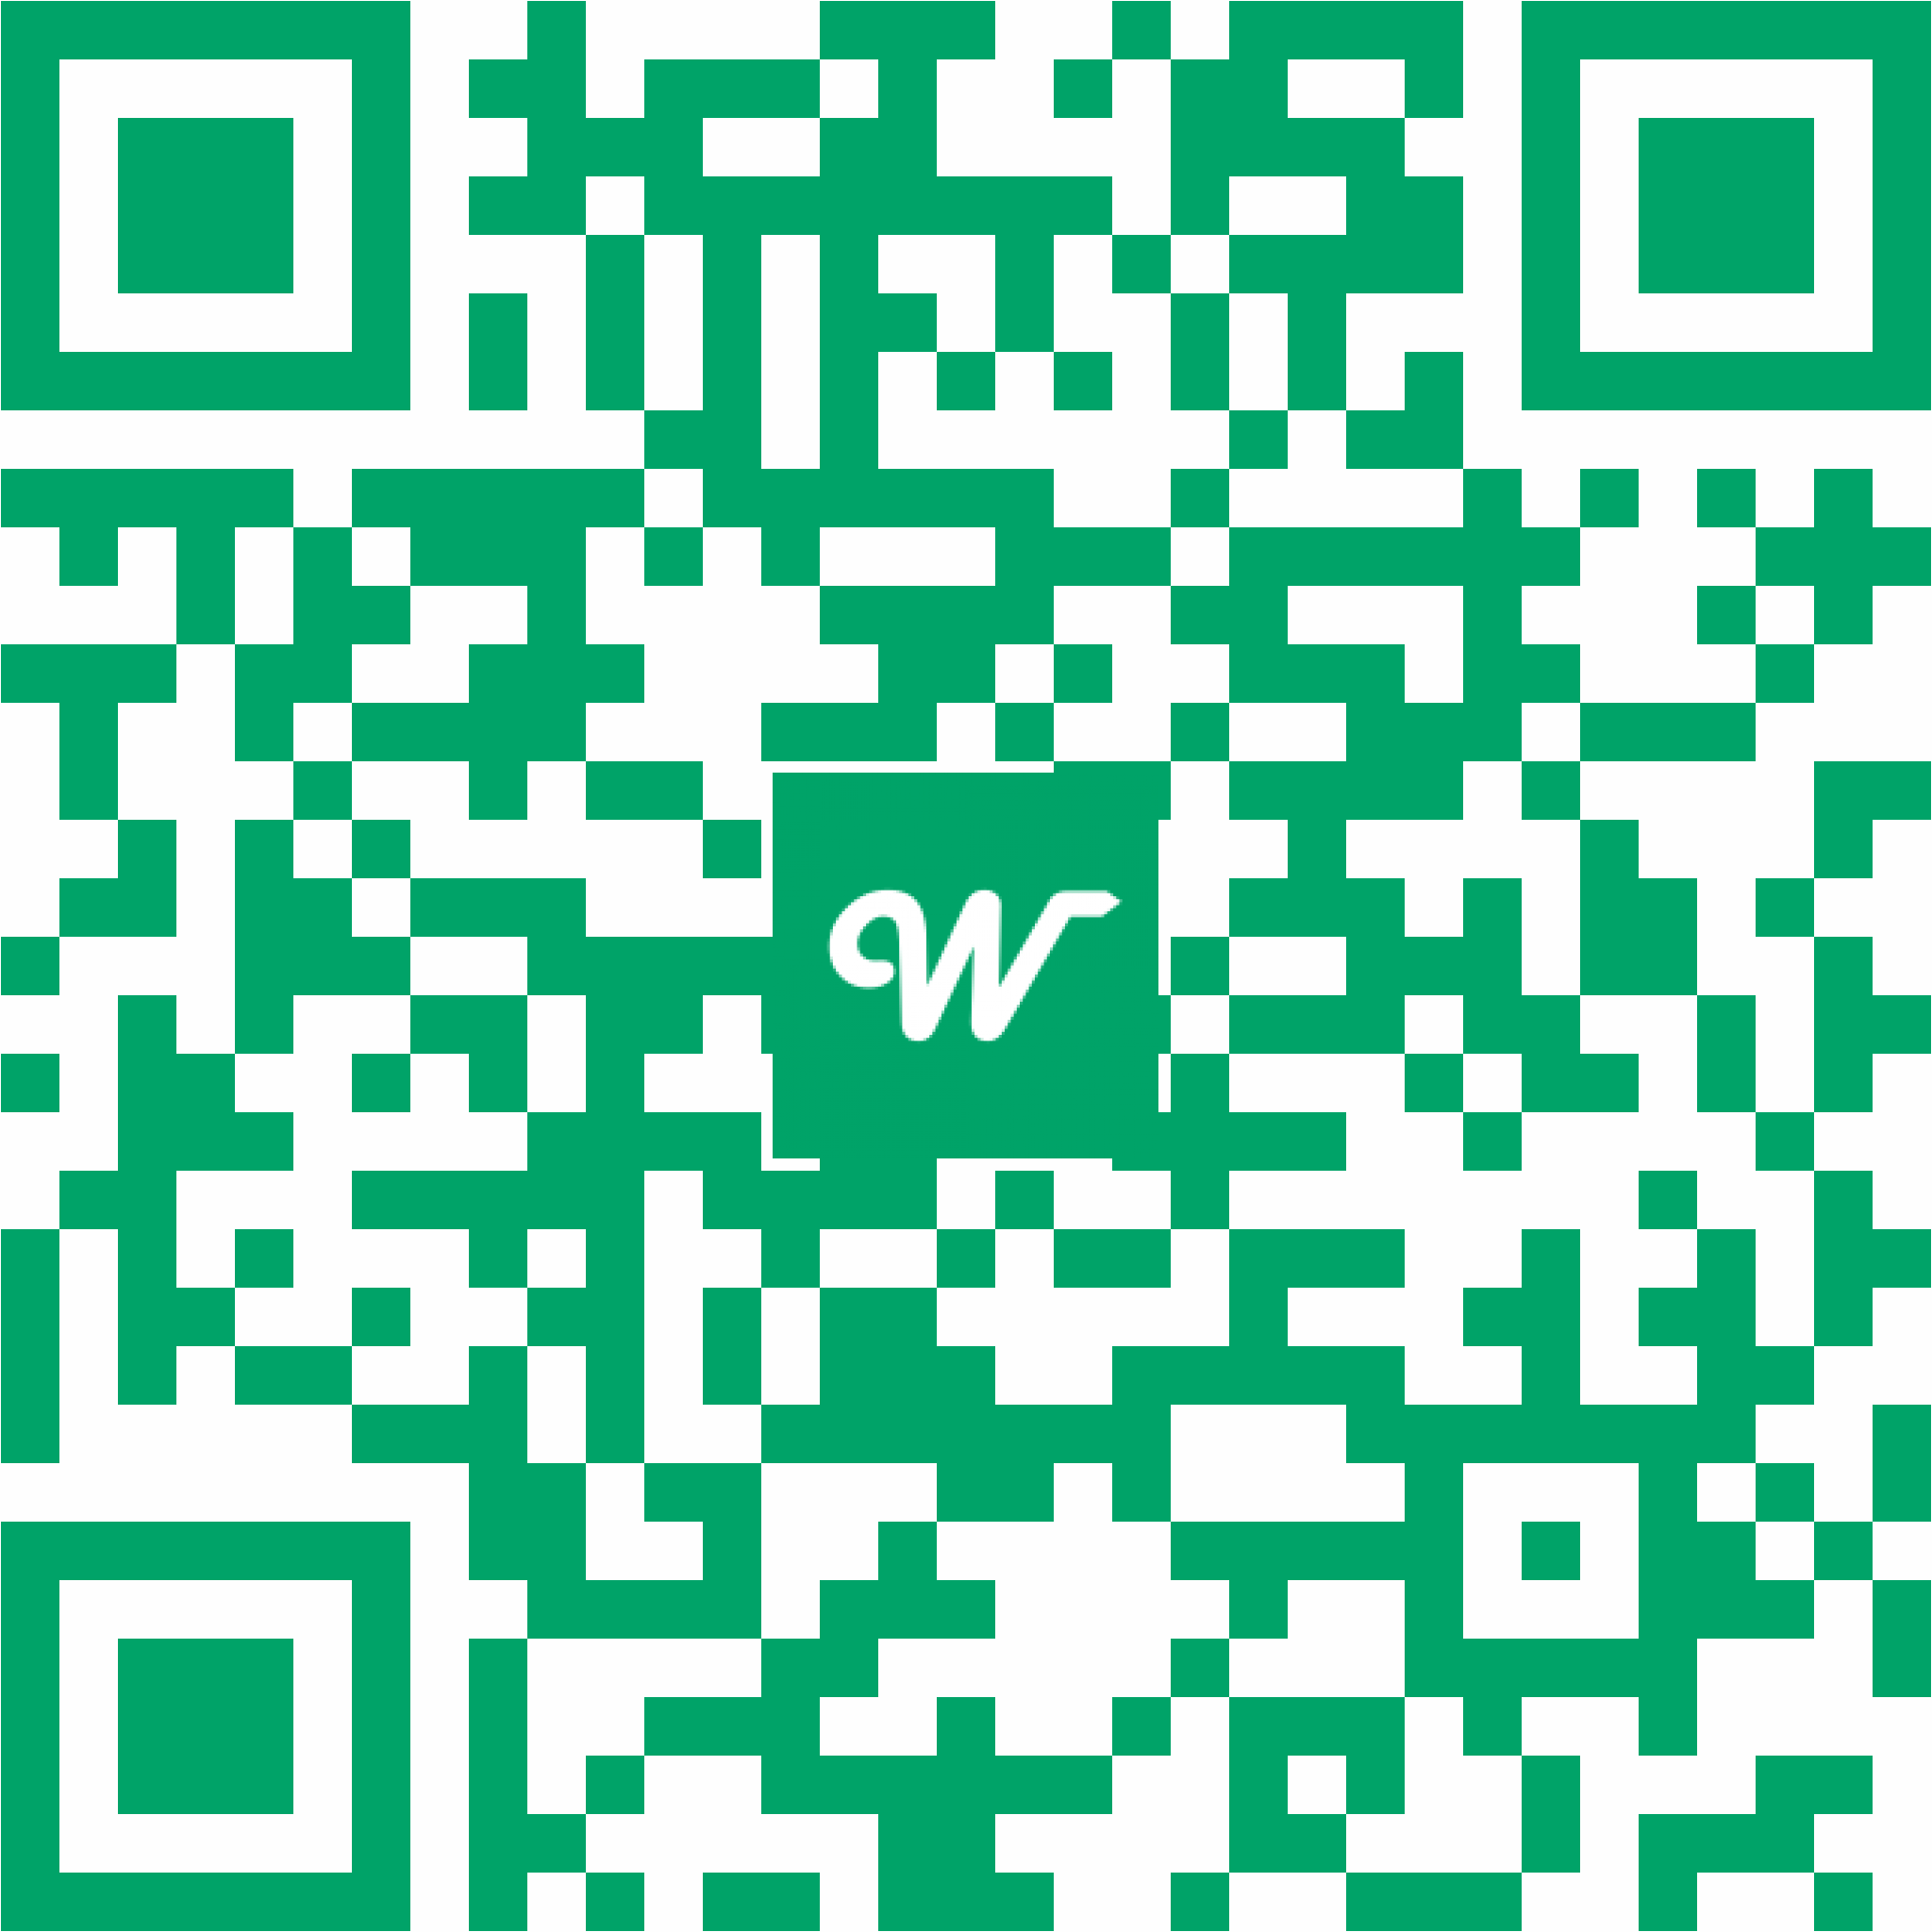 Printable QR code for Sultan Sulaiman Club